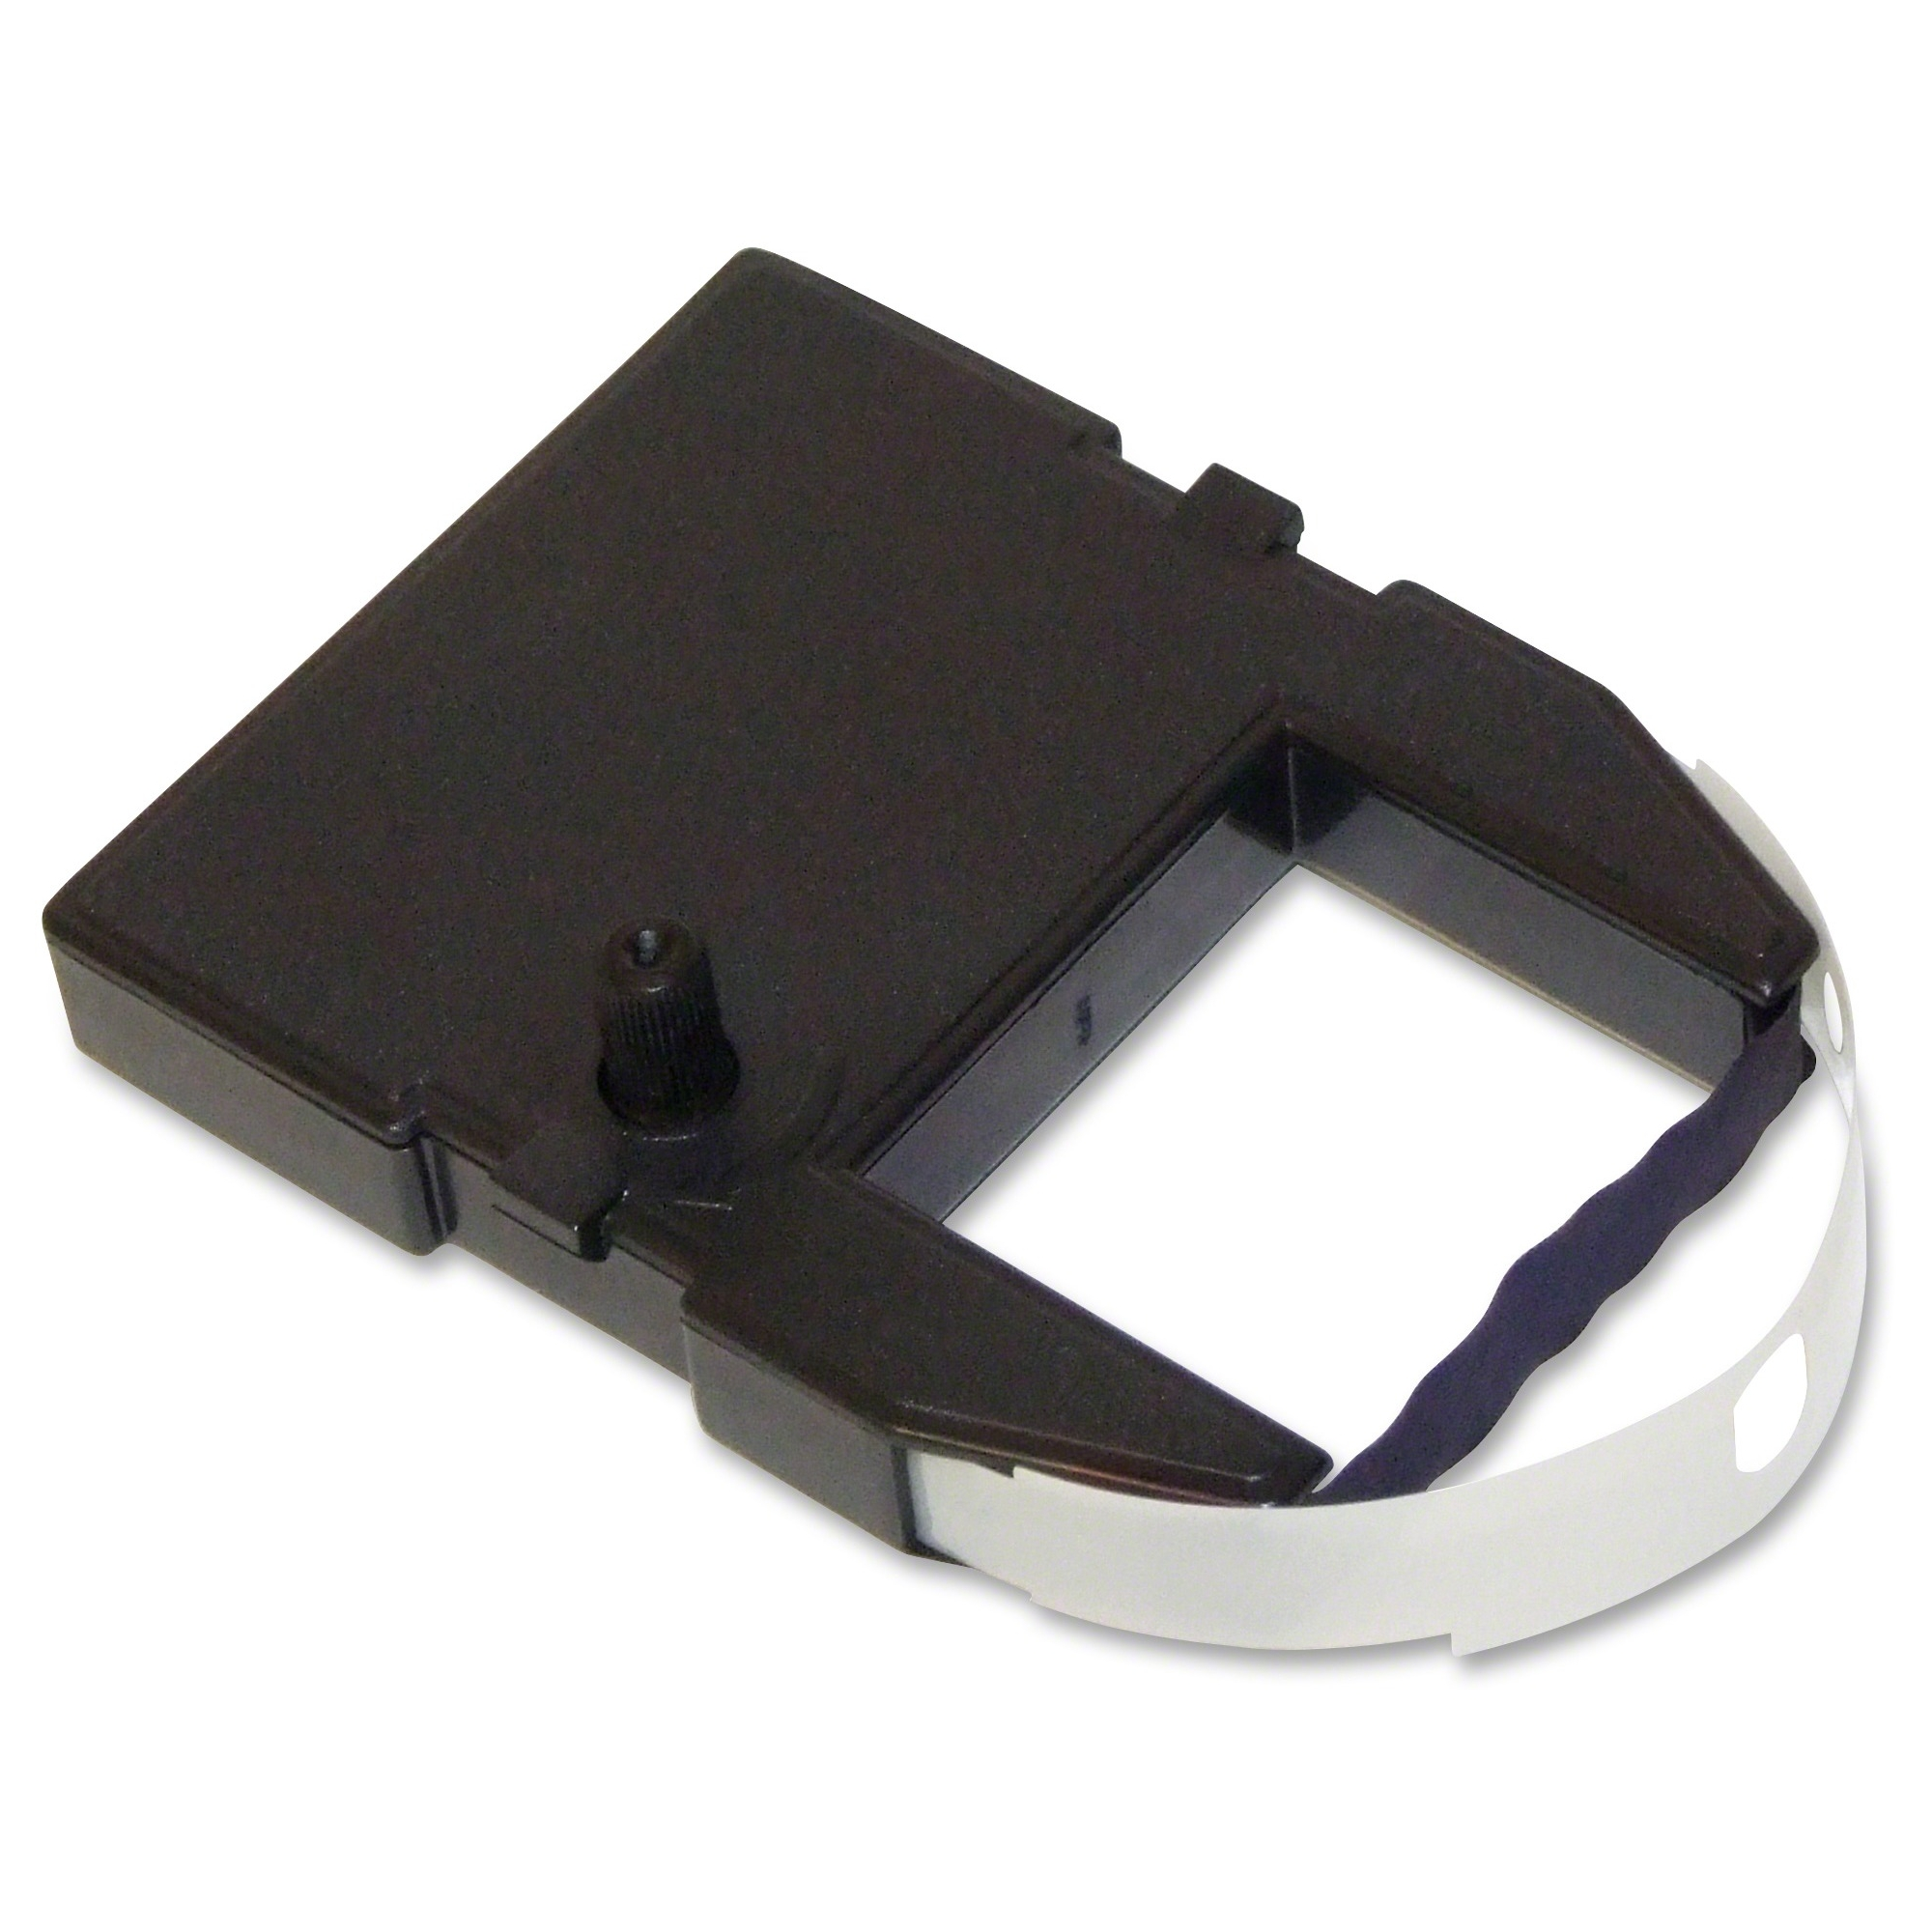 Replacement Ribbon for 3500 3700 4000 & 4000HD Time Clocks - Black - 1 Each - OEM